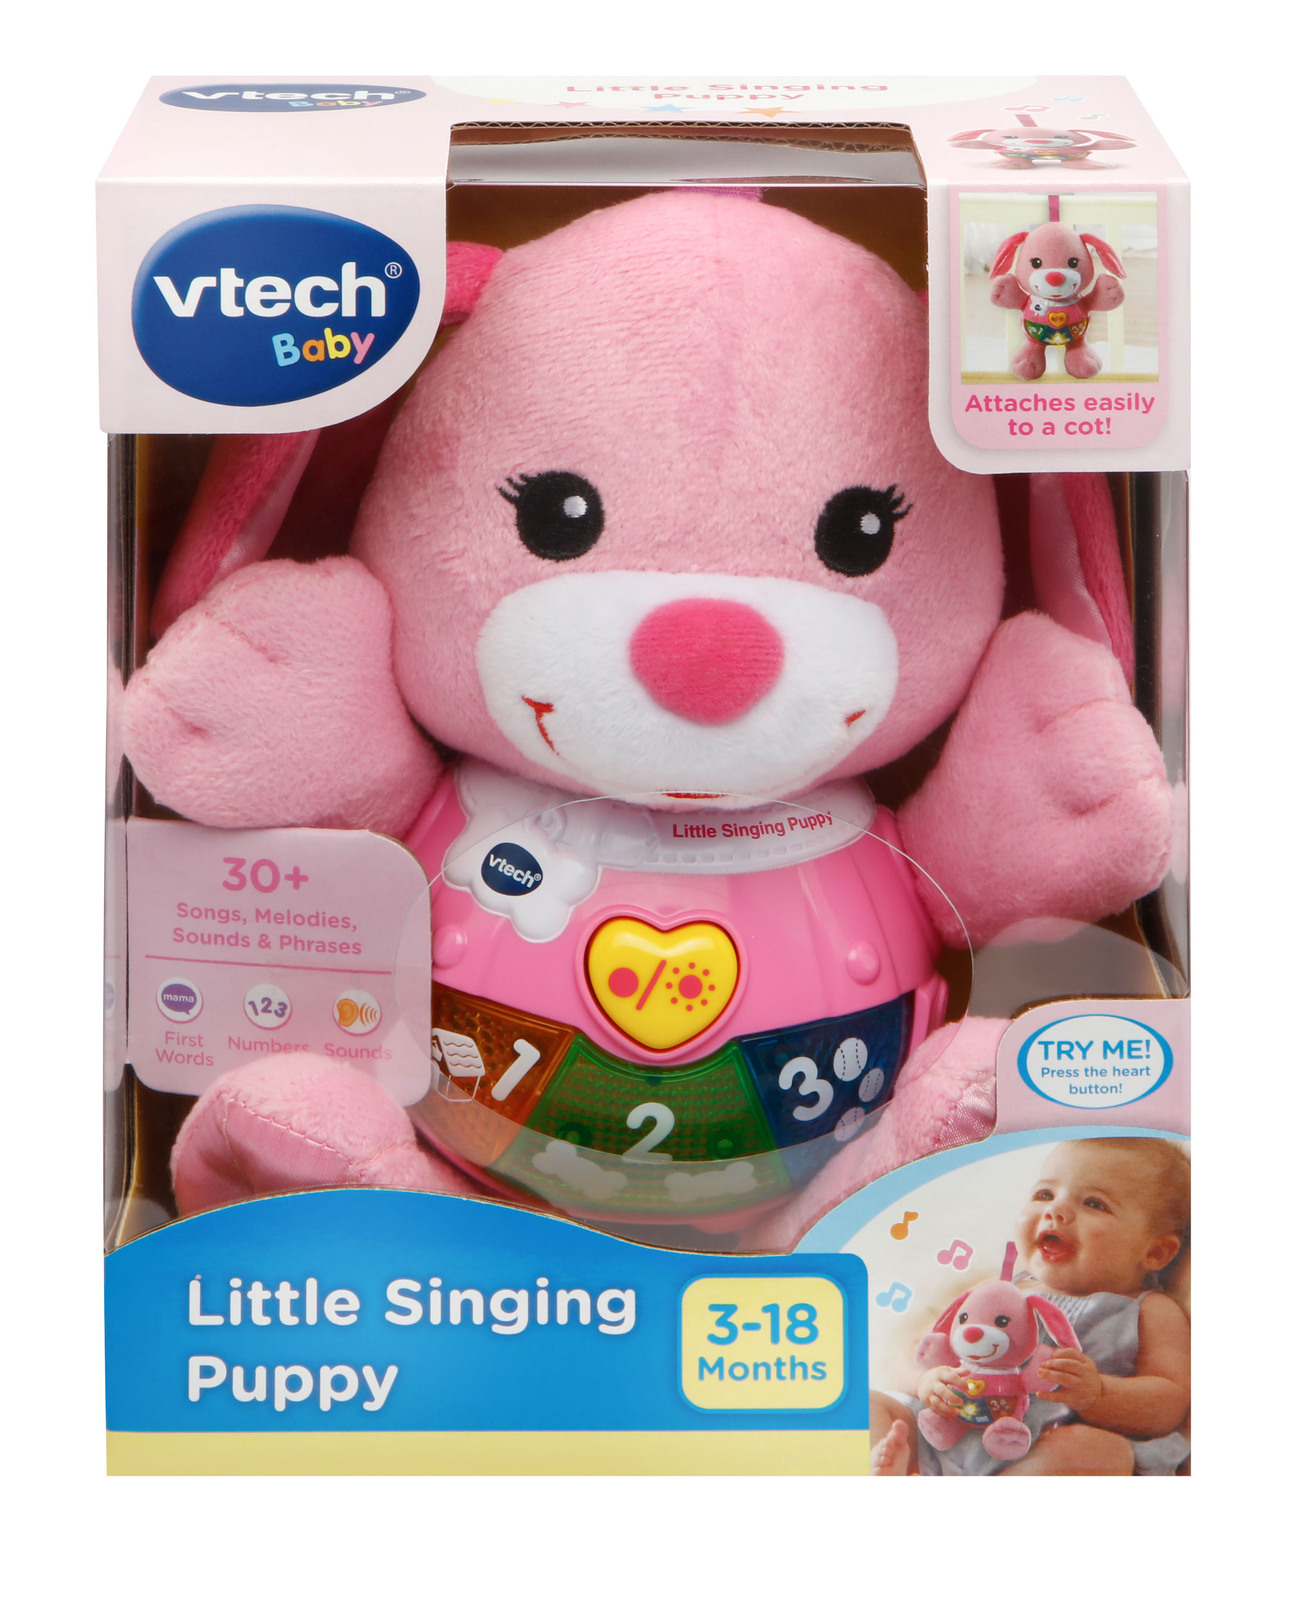 Vtech: Little Singing Puppy (Pink) - Lovable Learning Plush image